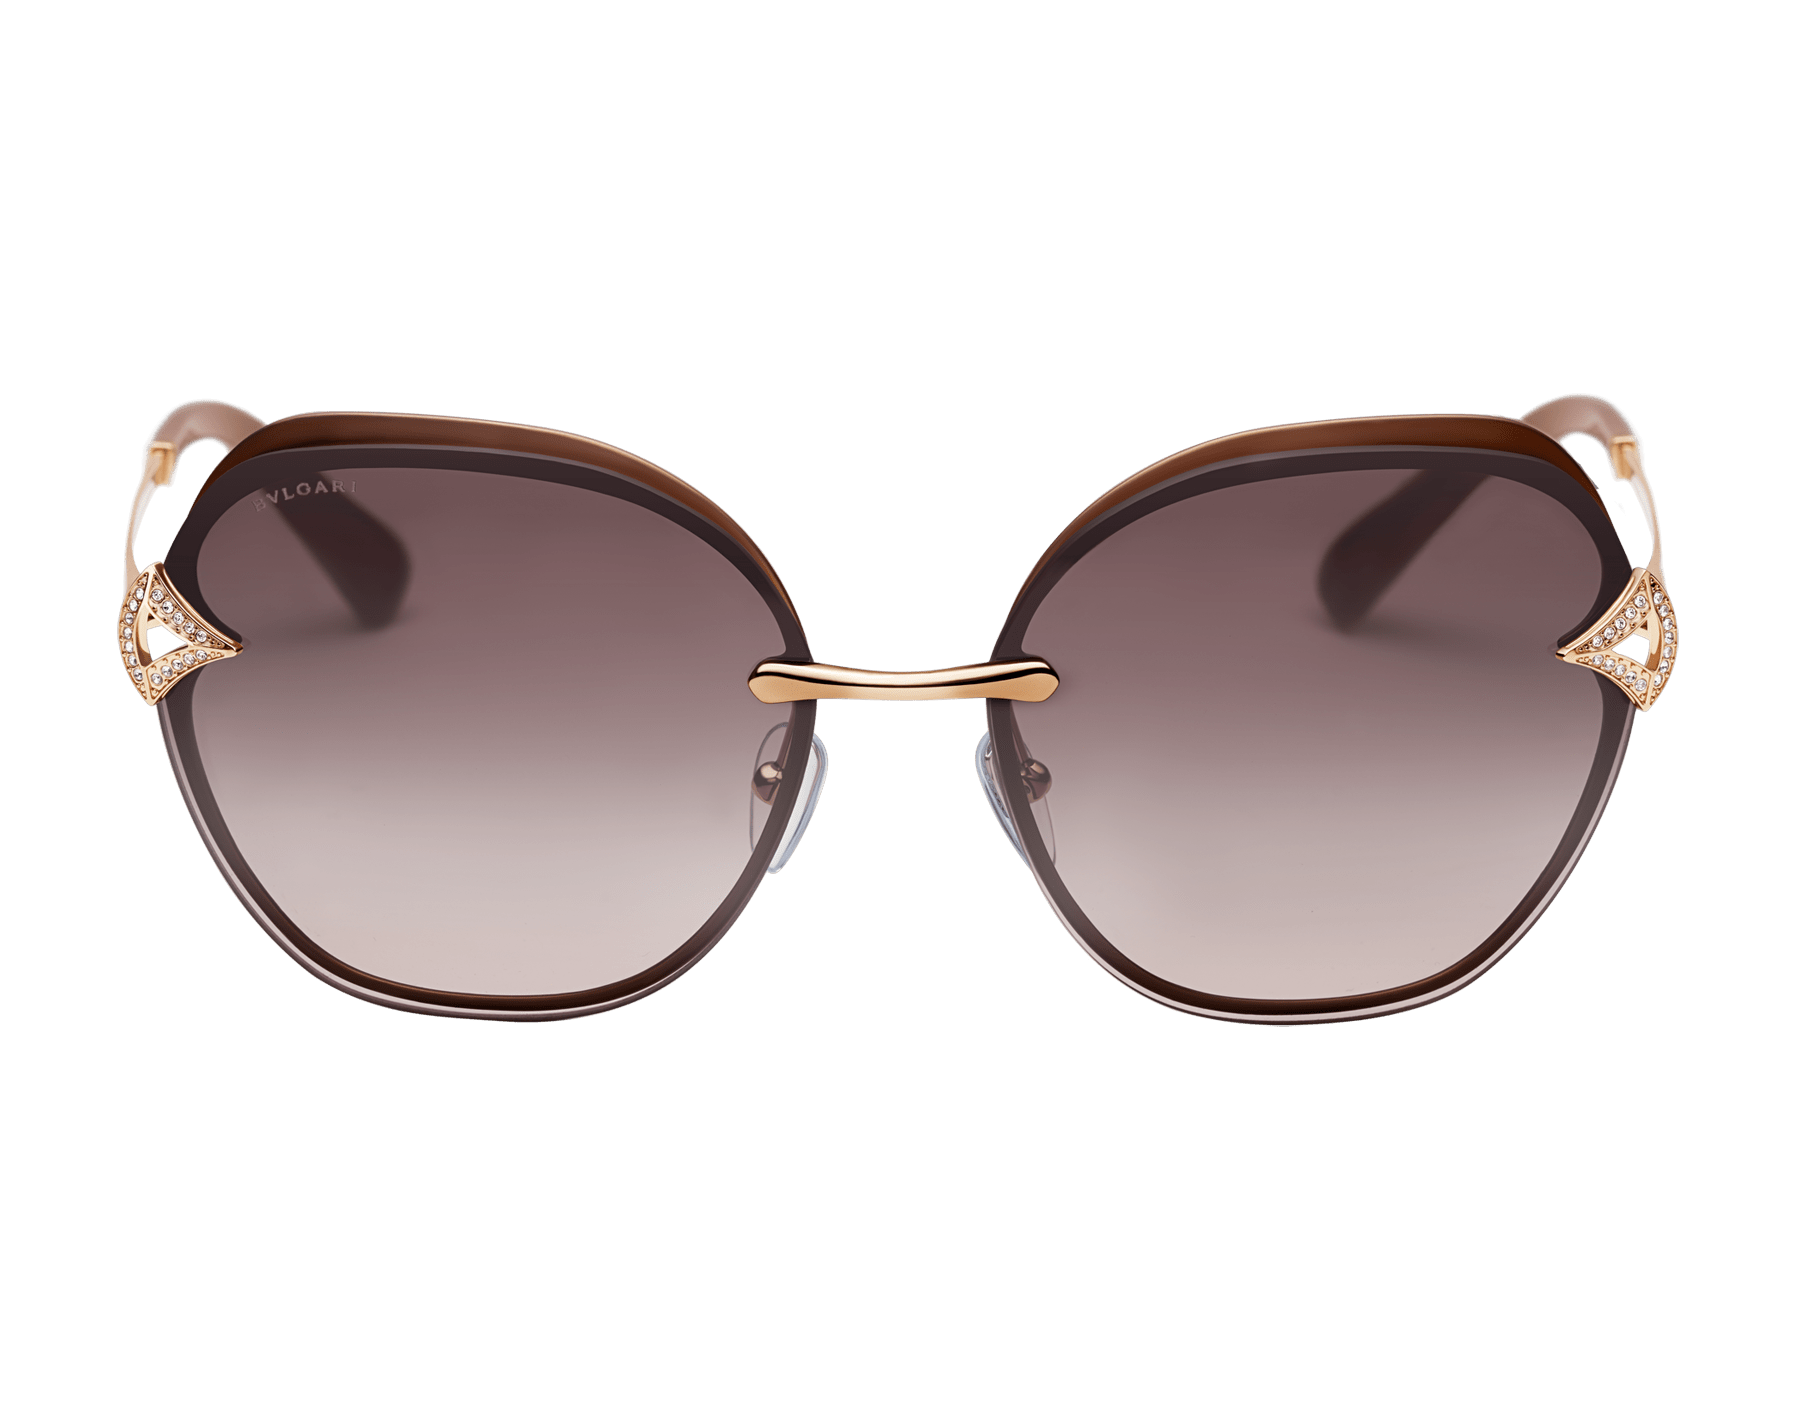 Bvlgari DIVAS' DREAM angular squared metal sunglasses 903670 image 2